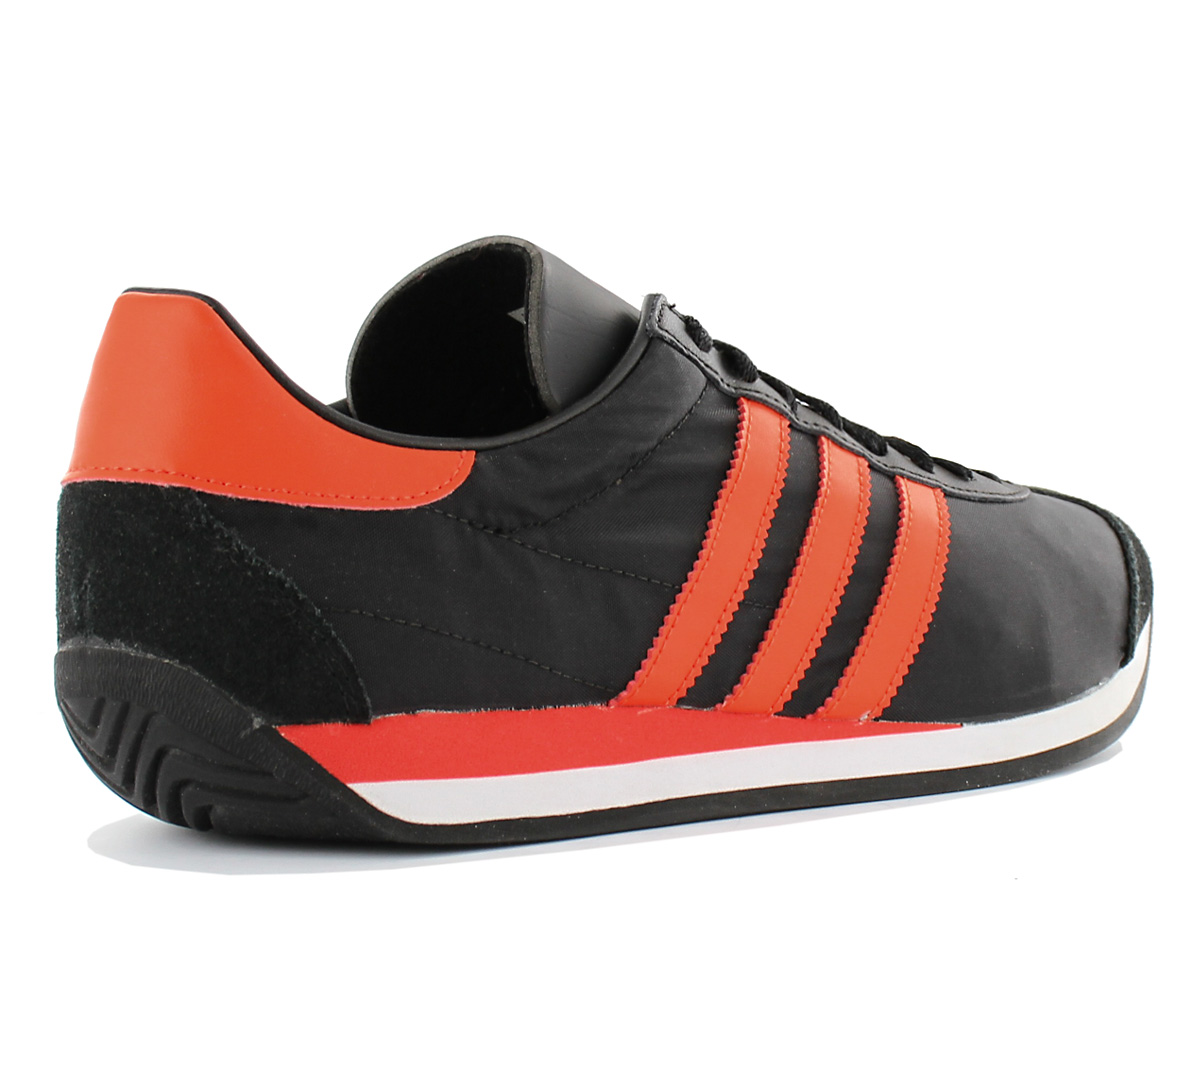 new product 3f5fd ffd47 Adidas Originals Country Og Mens Sneakers Retro Shoes Sneake